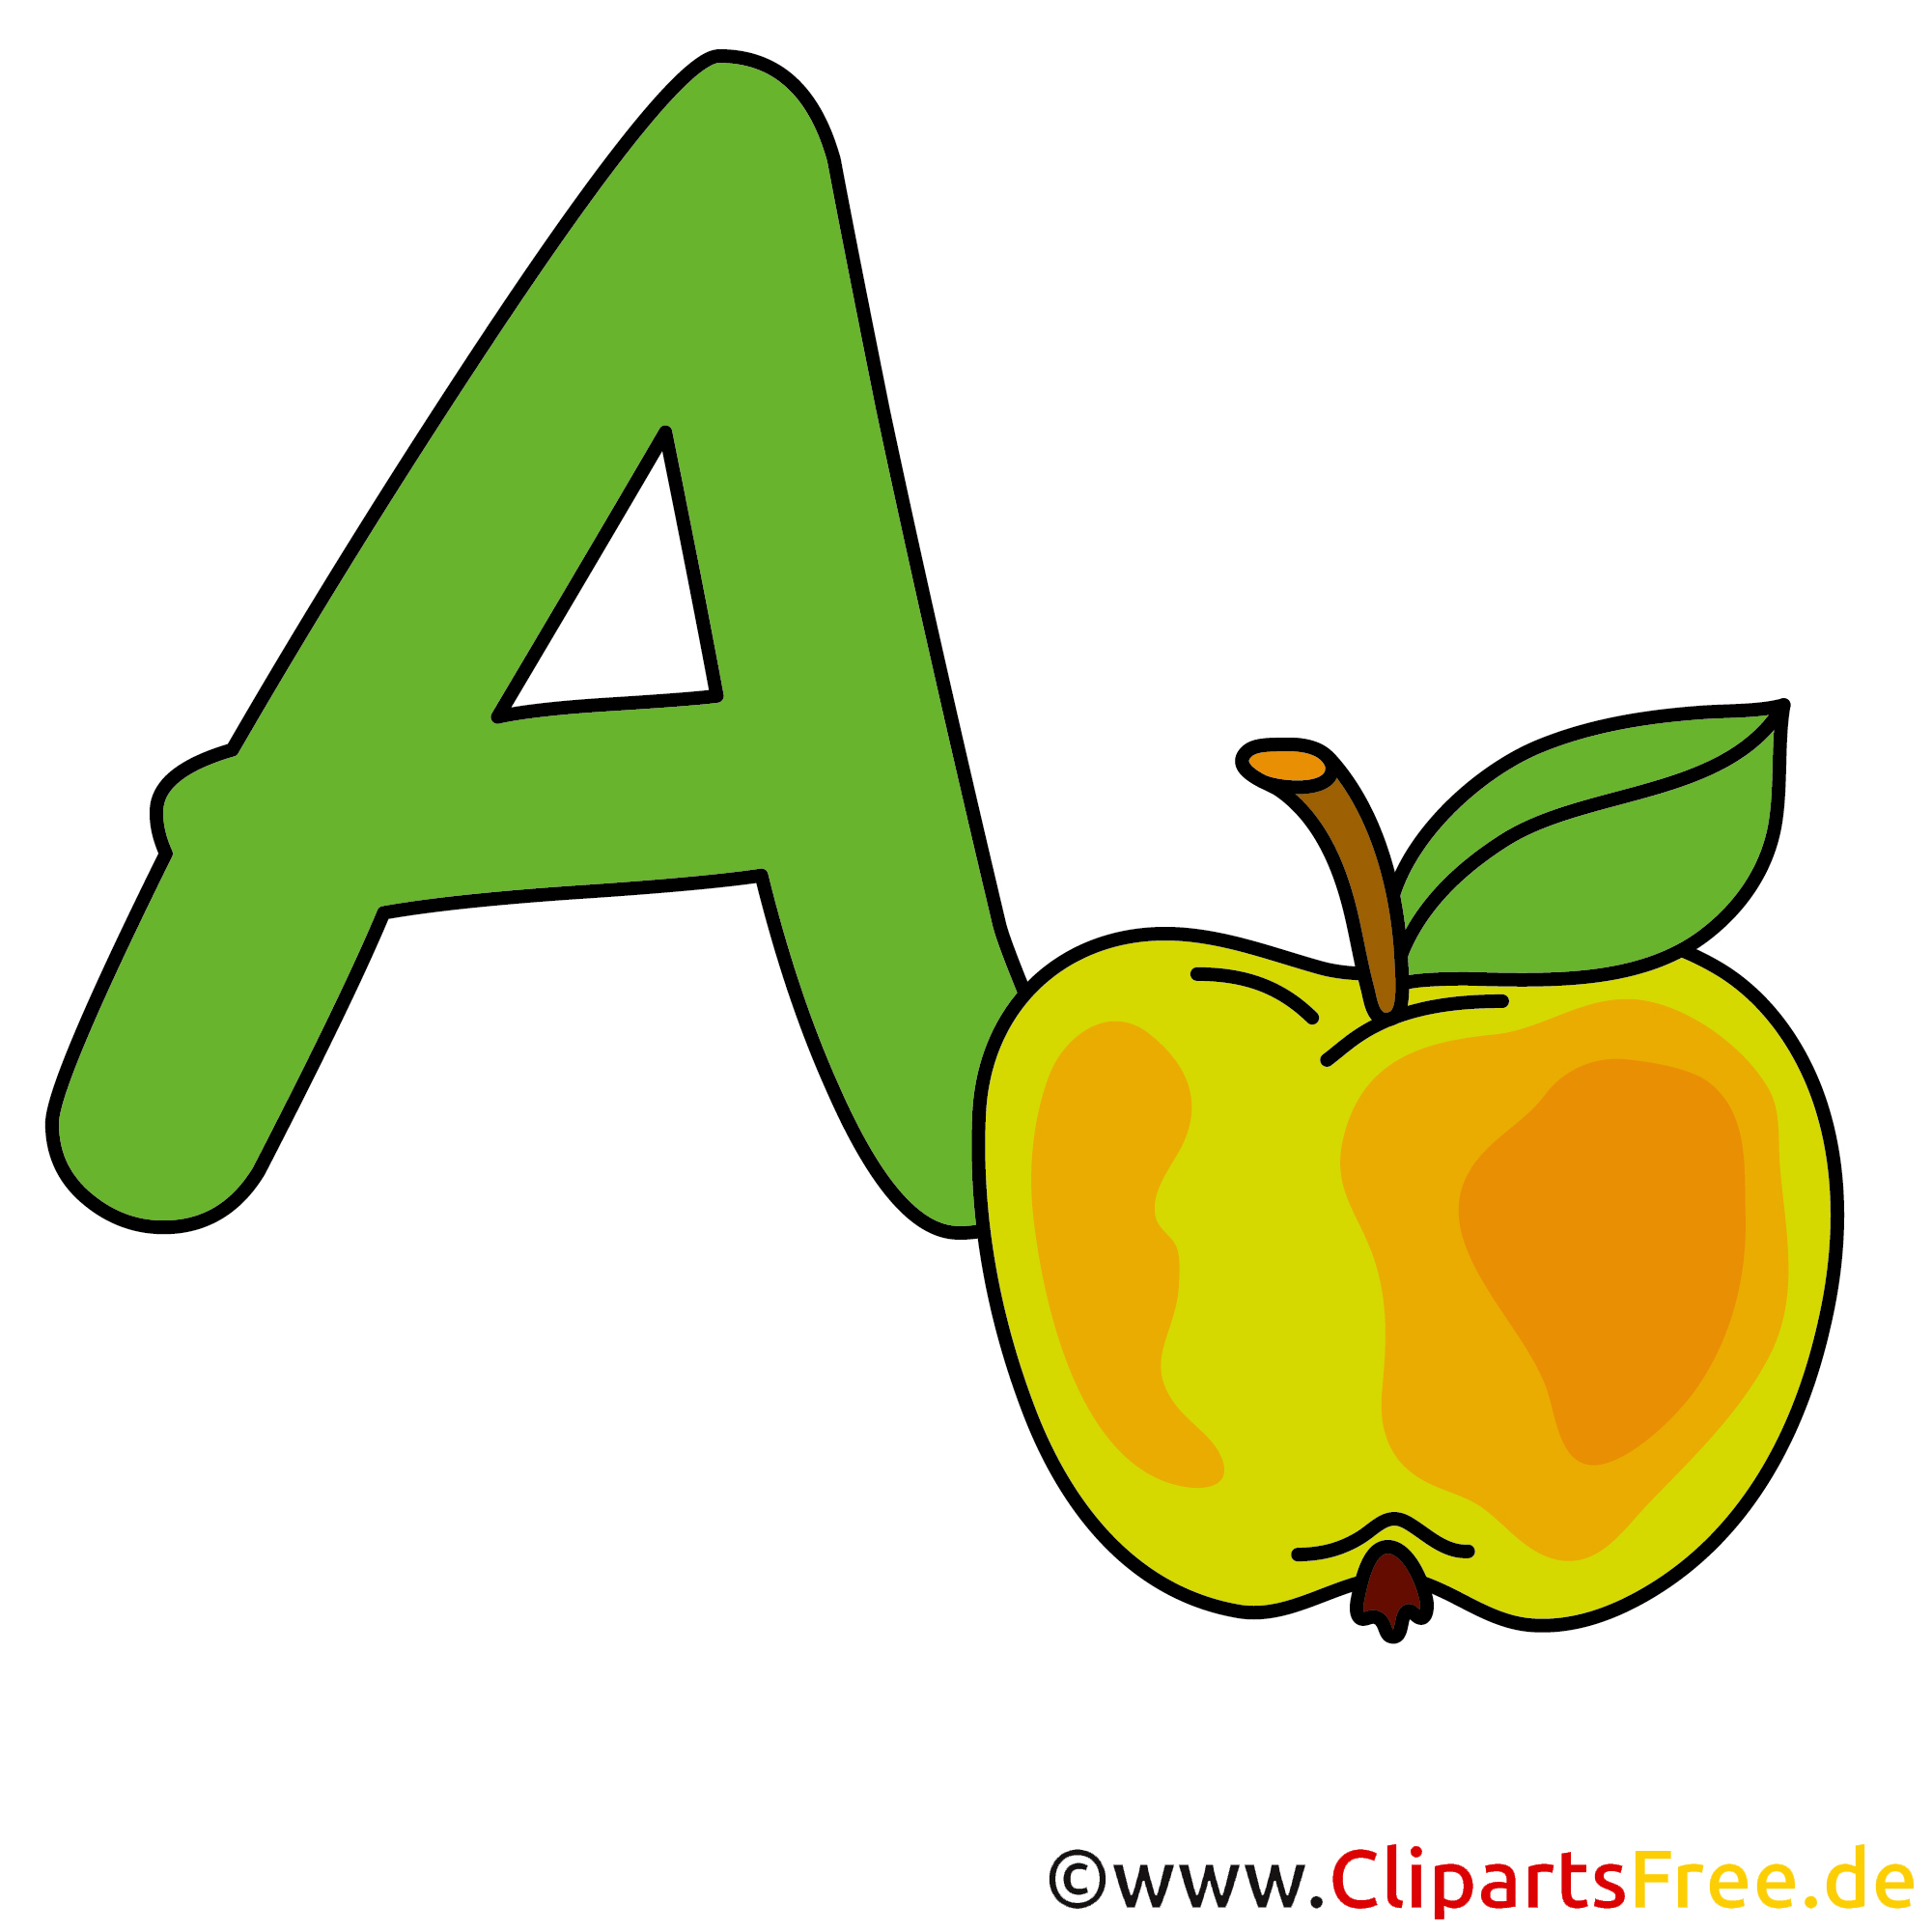 a is for apple clipart buchstaben. Black Bedroom Furniture Sets. Home Design Ideas